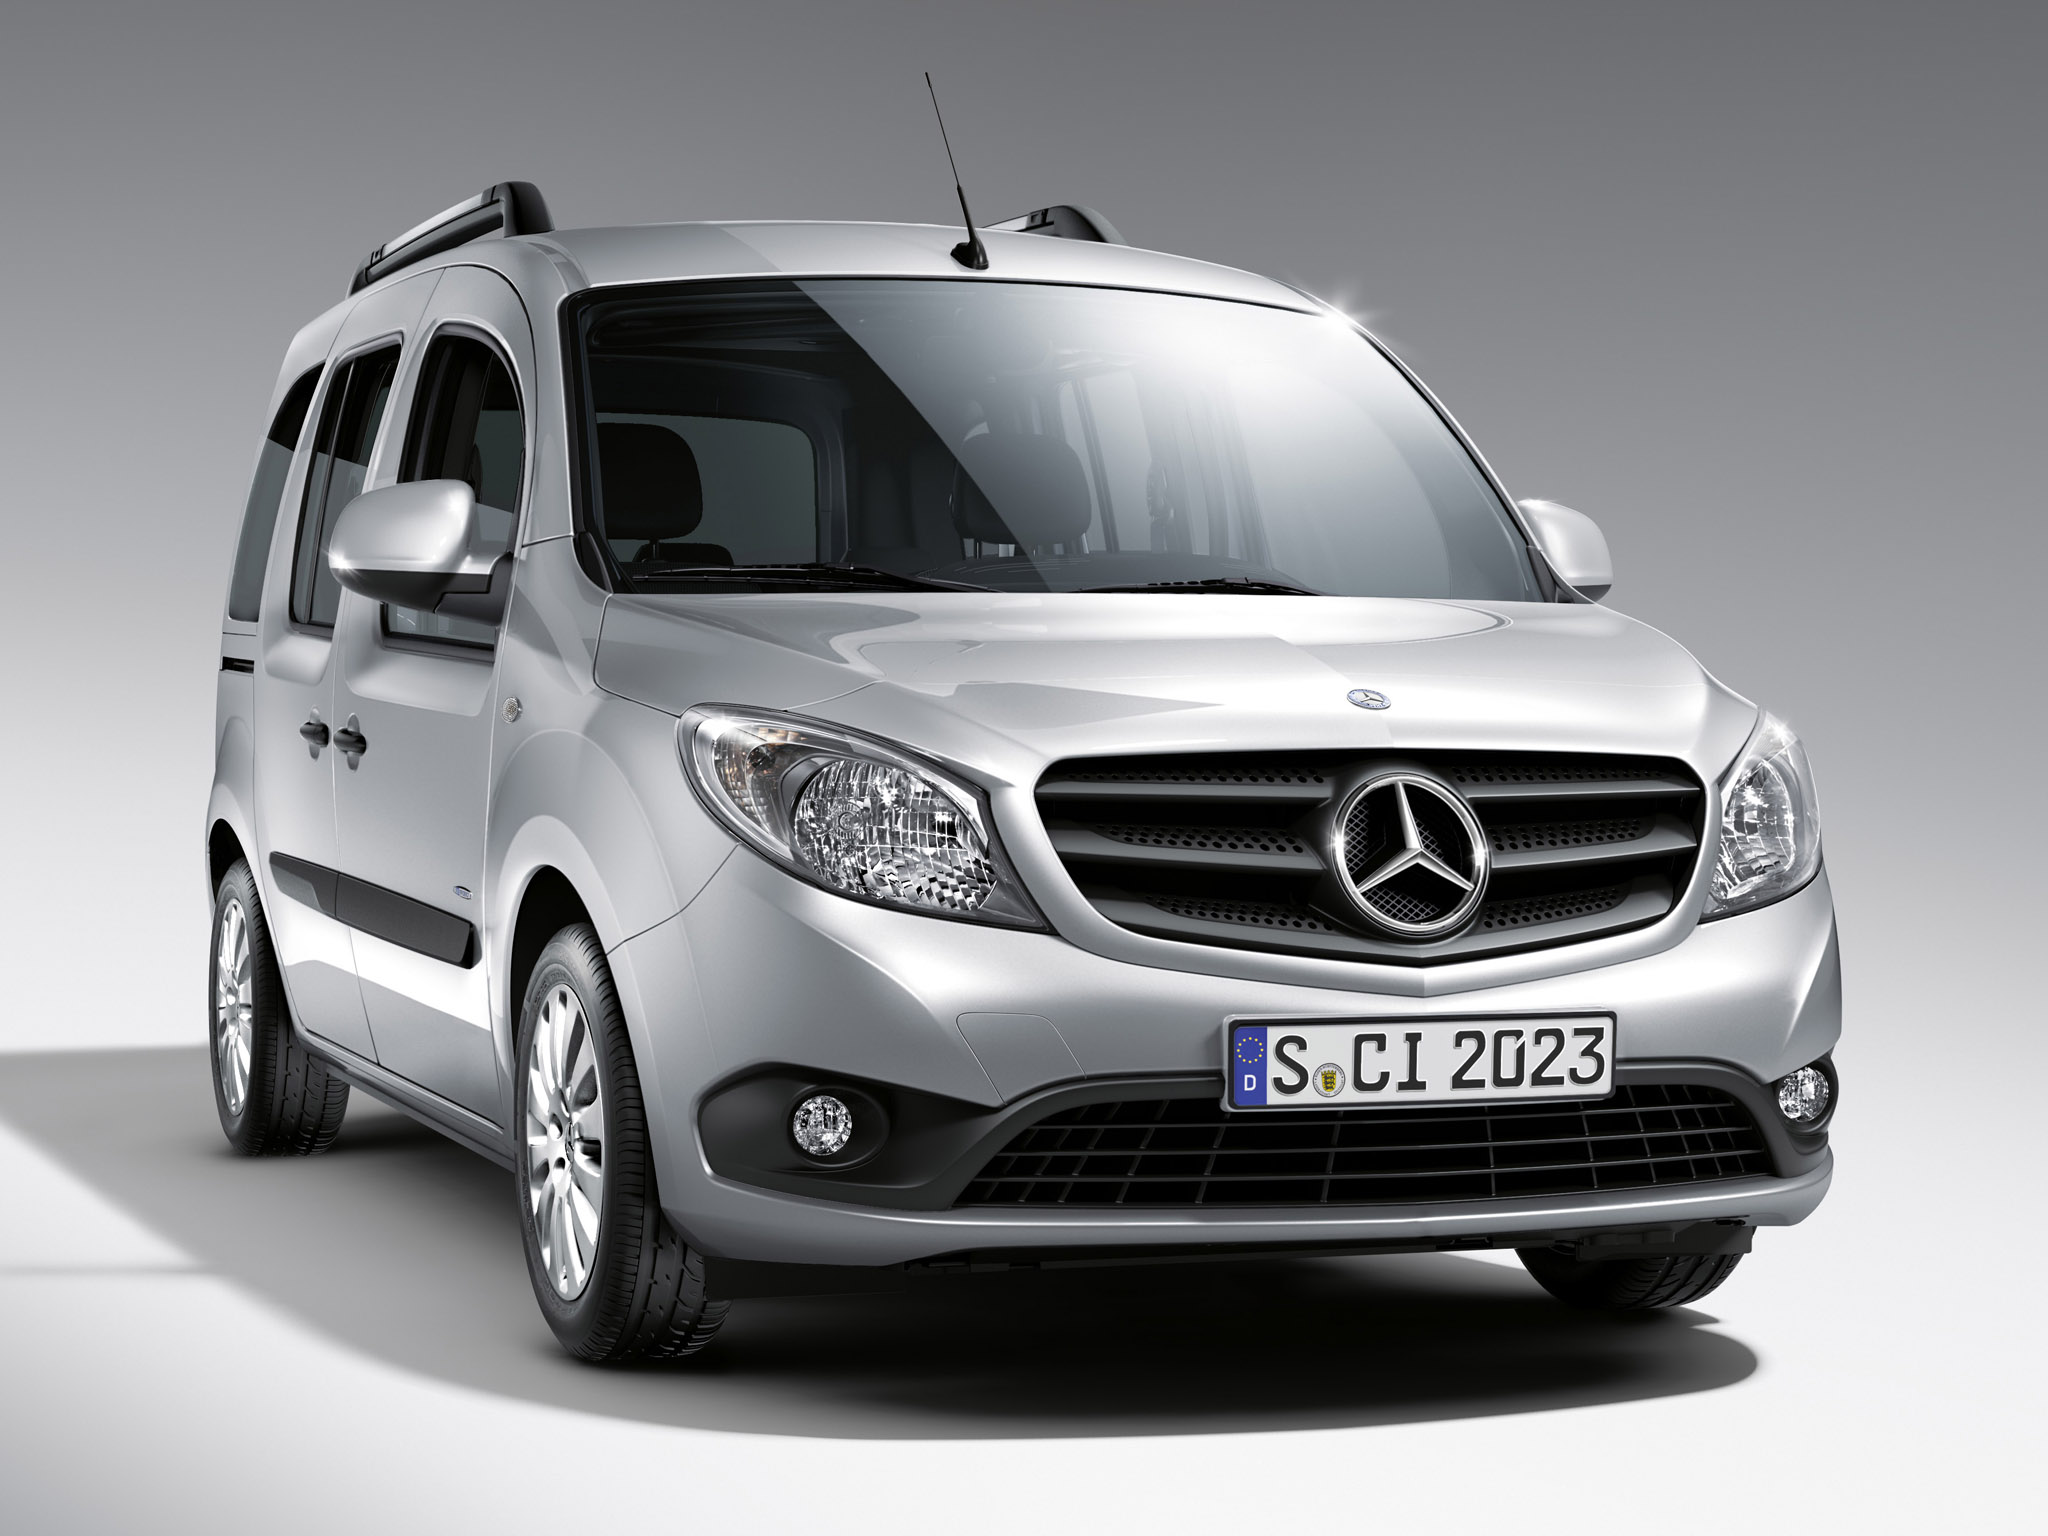 mercedes citan delivery van 109 cdi 2012 mercedes citan delivery van 109 cdi 2012 photo 03 car. Black Bedroom Furniture Sets. Home Design Ideas